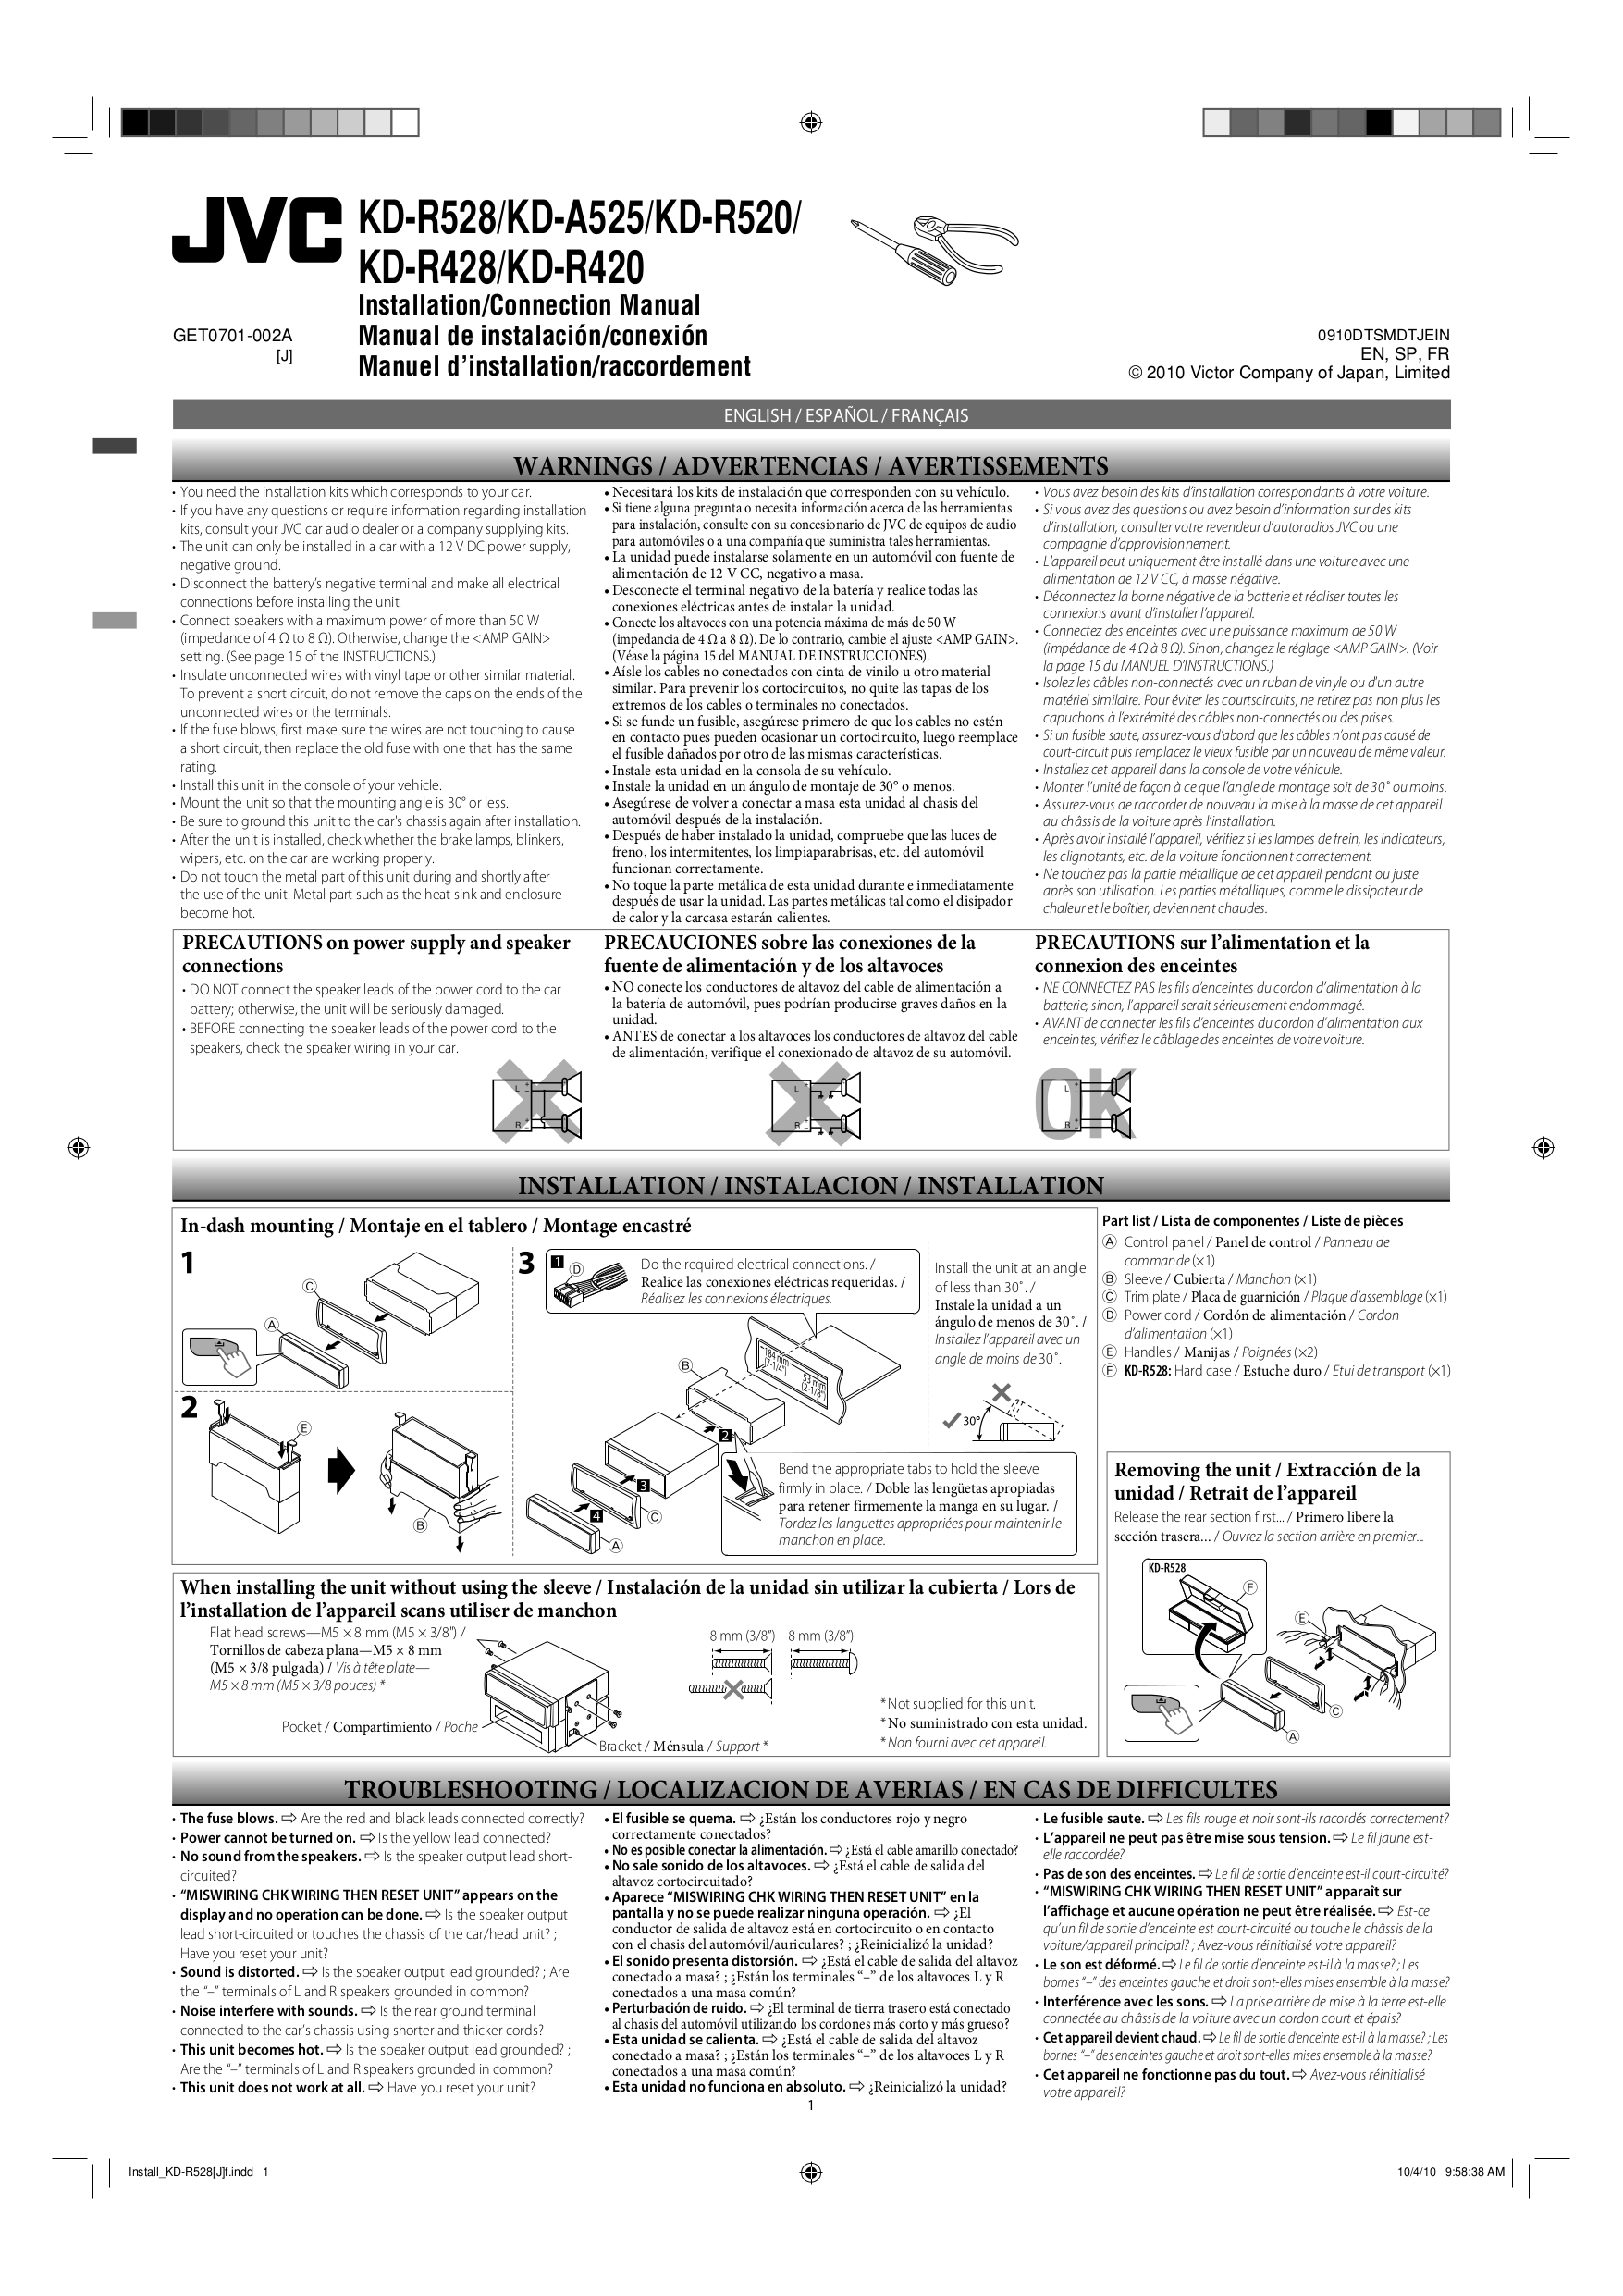 jvc unit miswiring then reset jvc image wiring diagram pdf for jvc kd r520 car receiver manual on jvc unit miswiring then reset